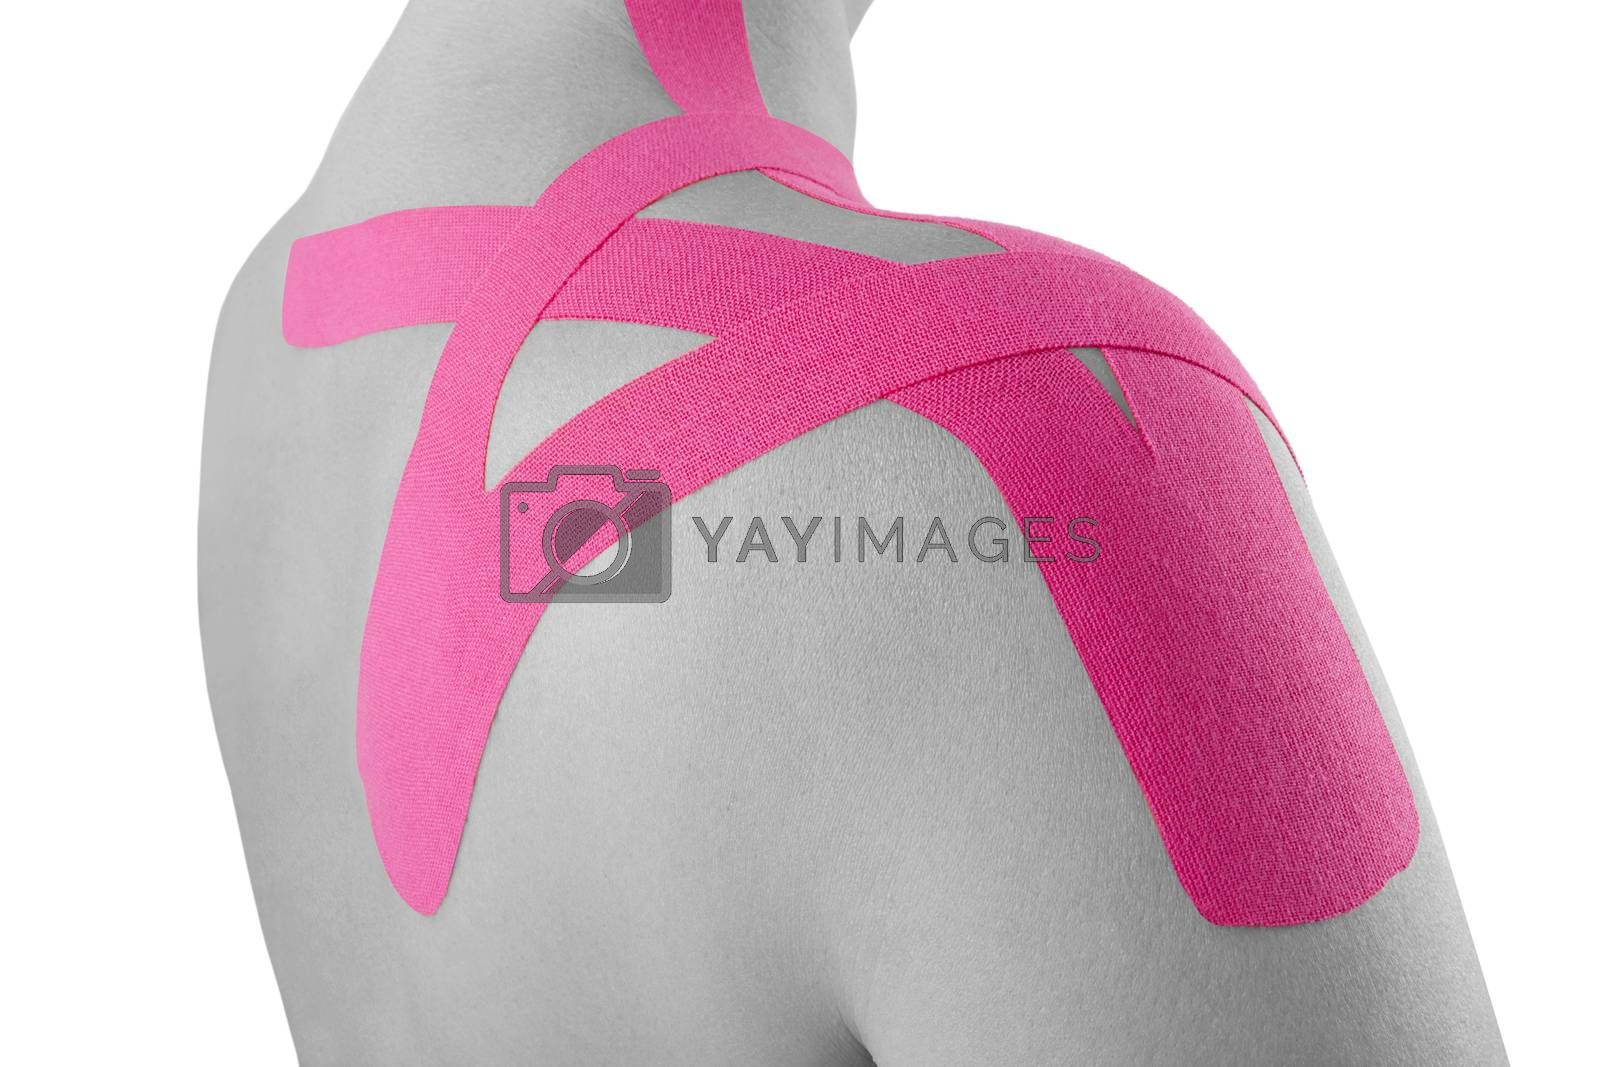 Kinesio tape on female shoulder isolated on white background. Rehabilitation and physiotherapy.